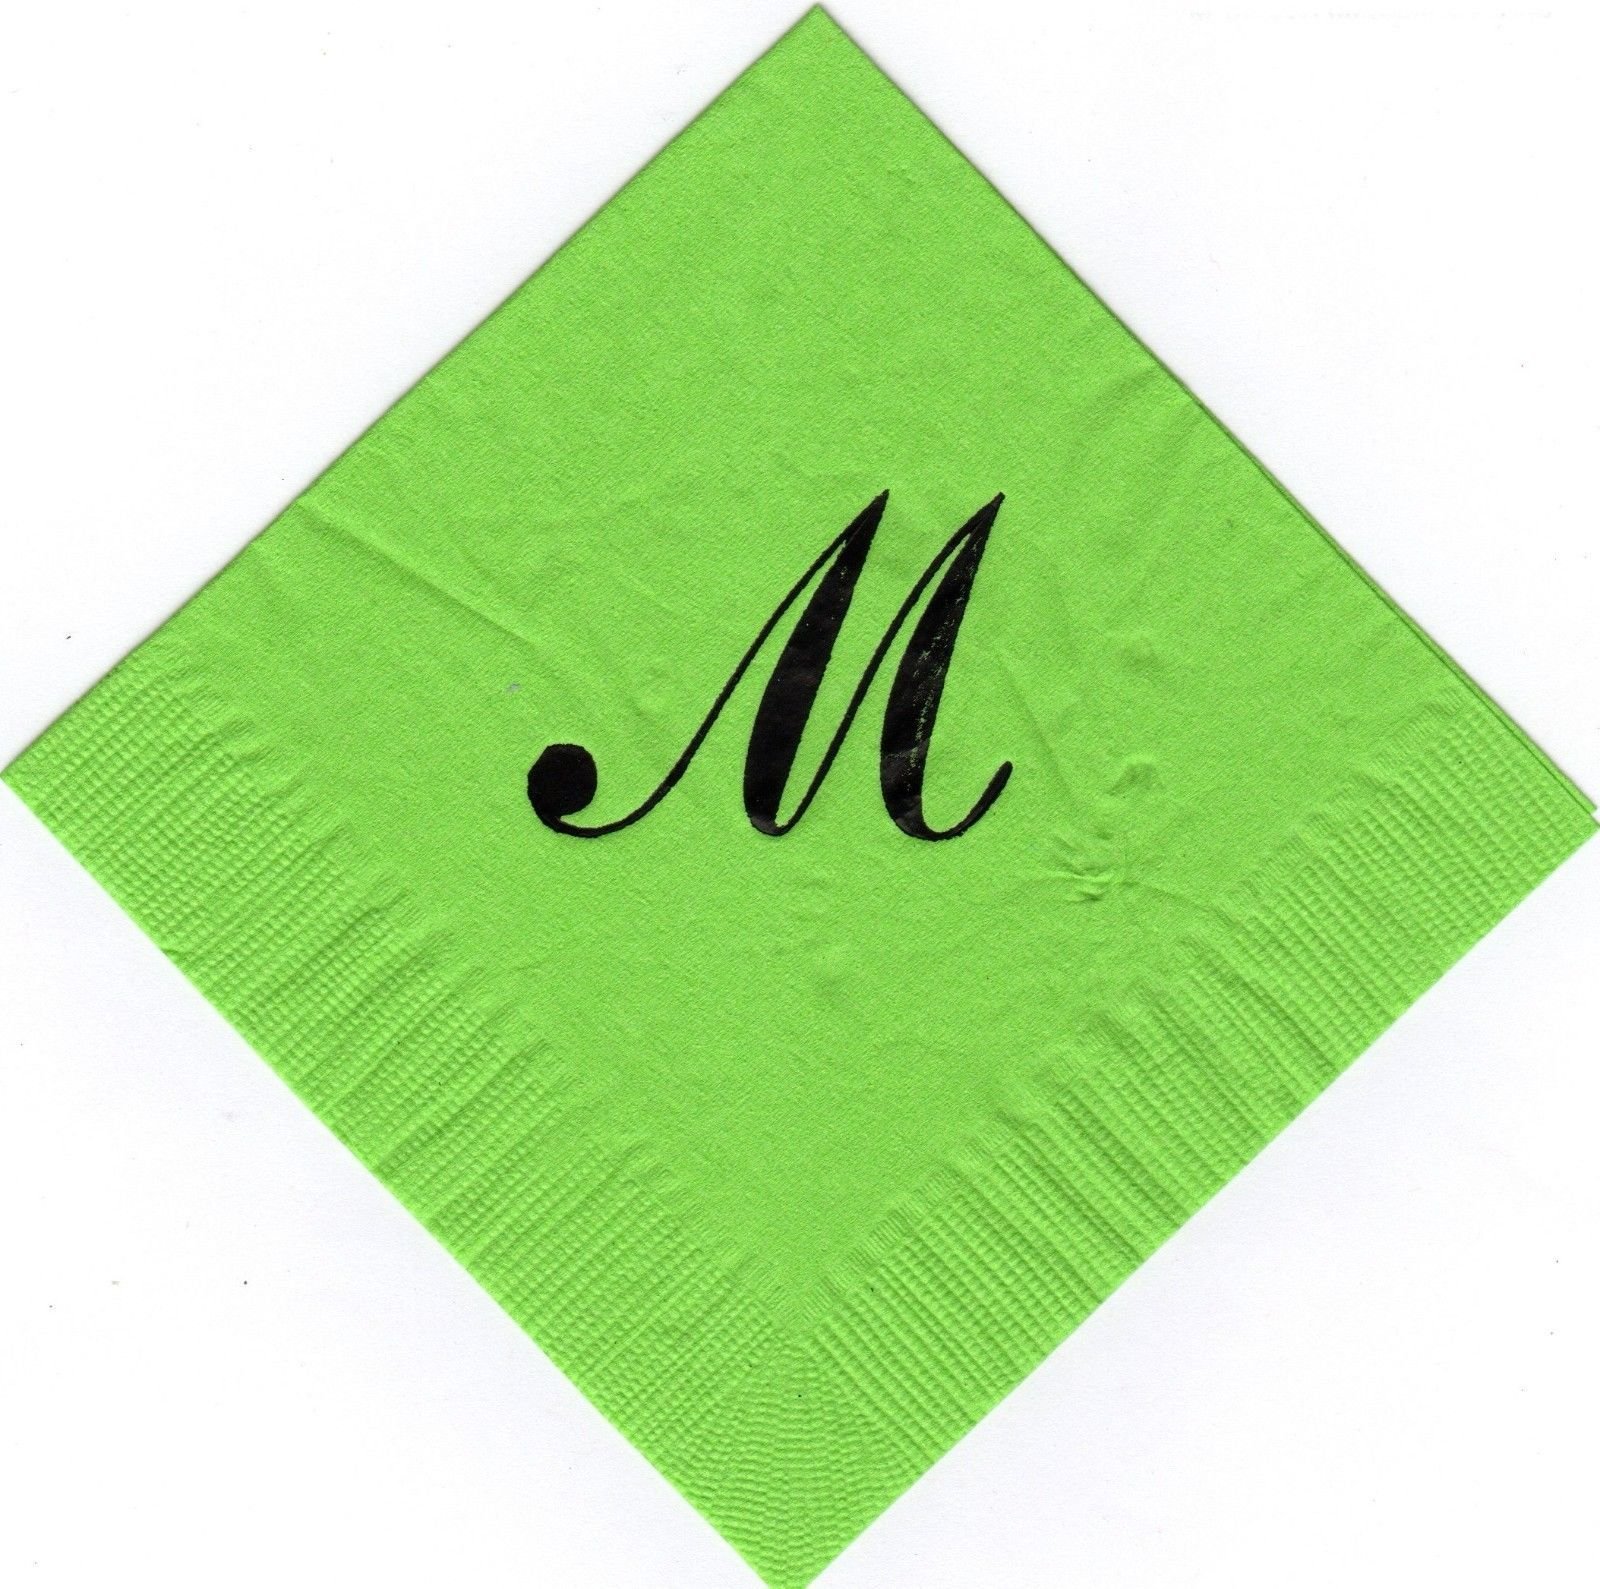 250 large Sheldon Monogram printed napkins your choice of letter and colors